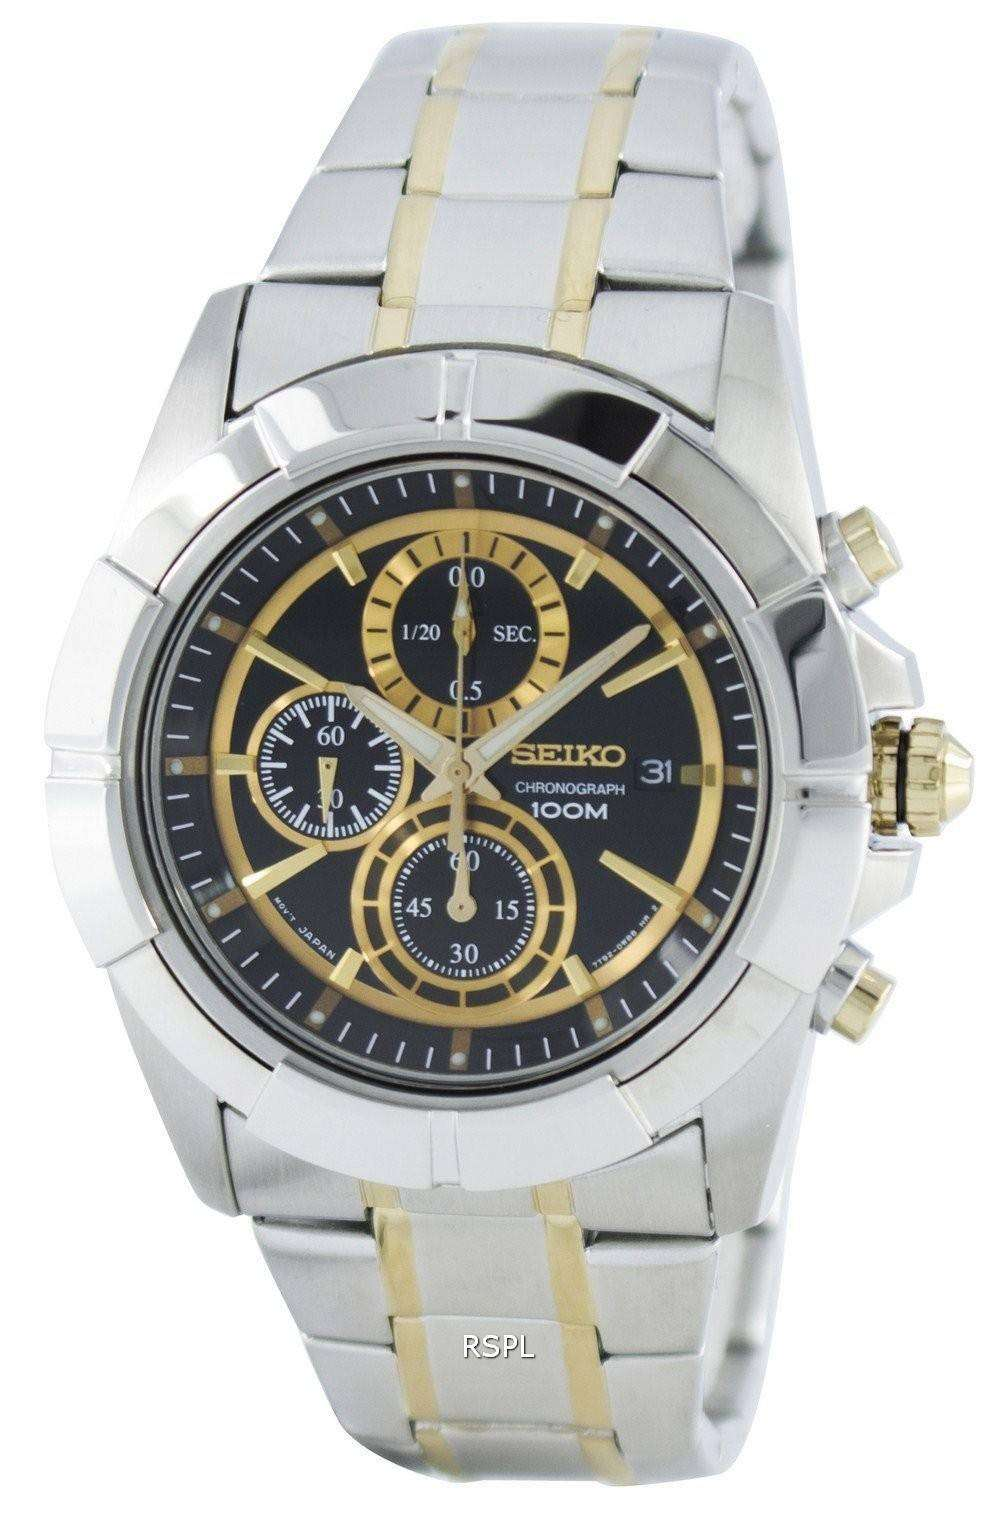 Seiko Lord Quartz Chronograph SNDE70 SNDE70P1 SNDE70P Men s Watch ... 3274f19192a